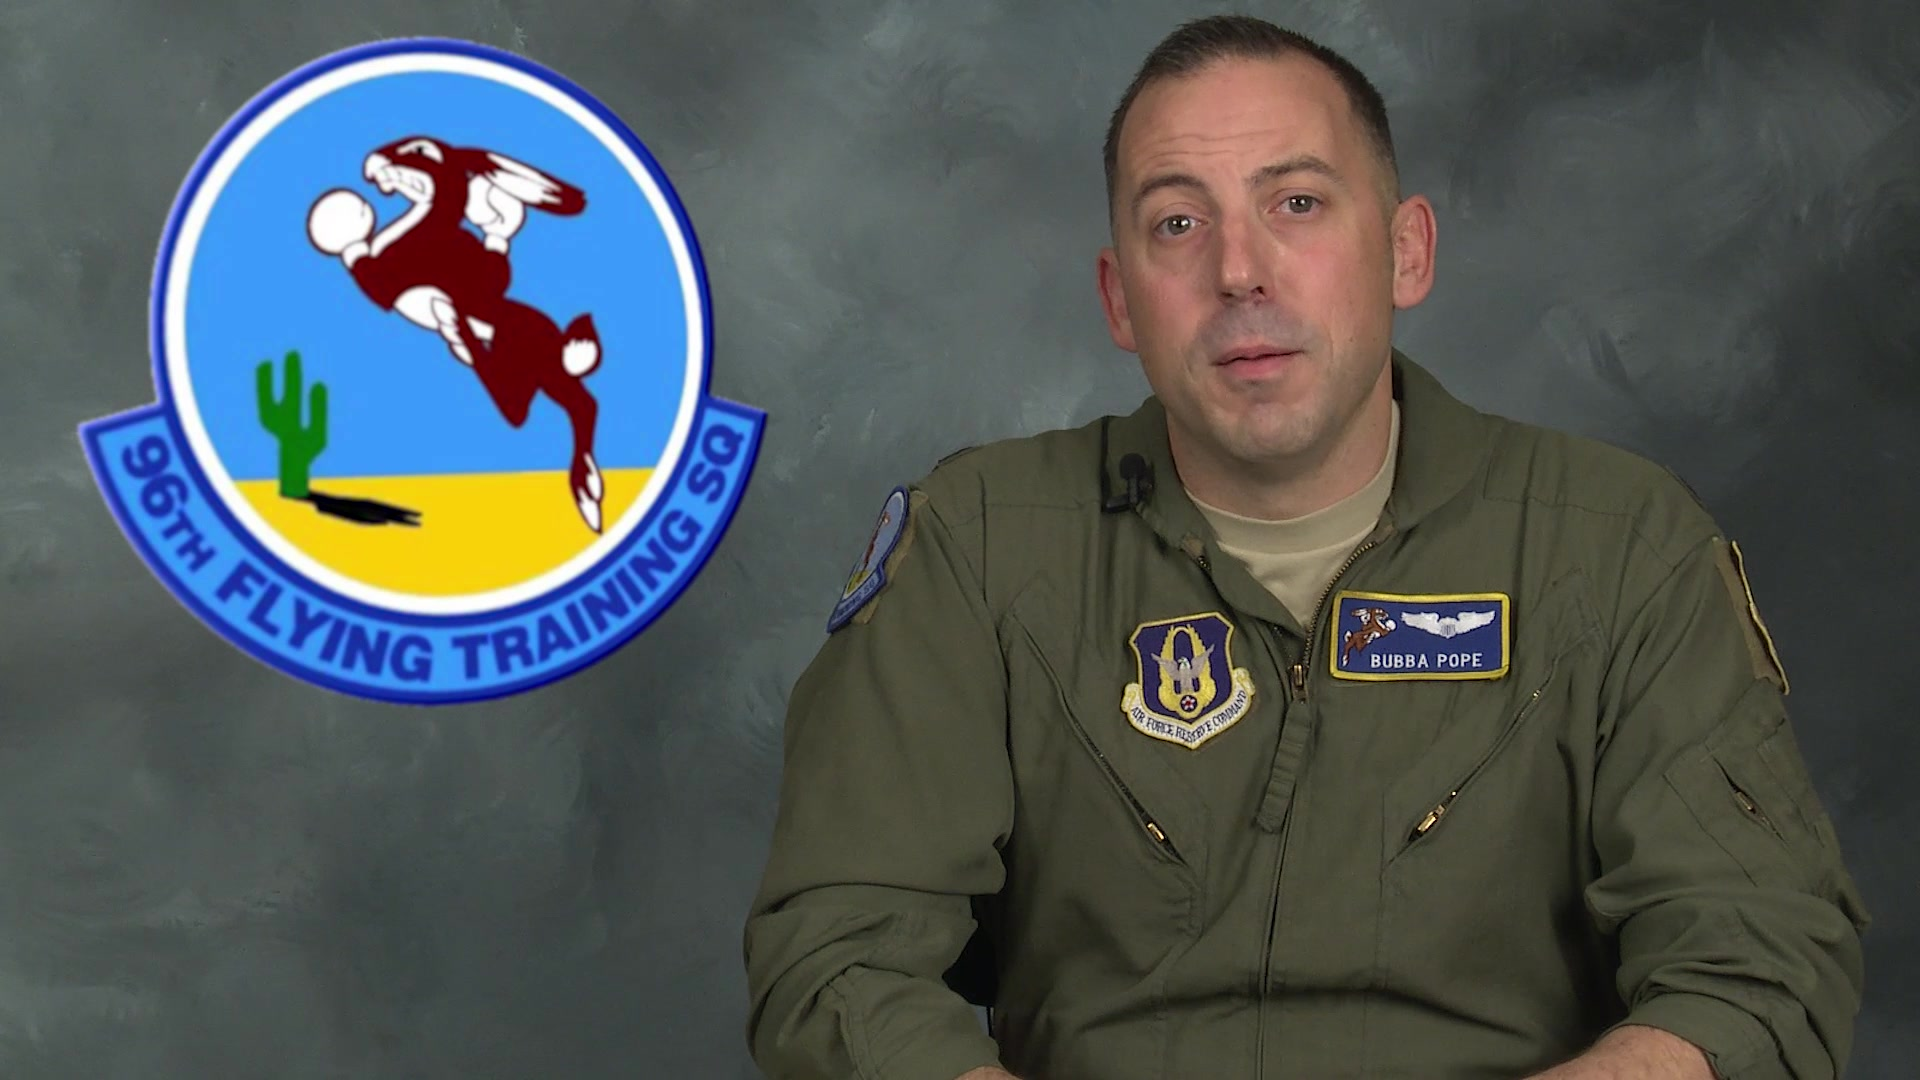 96th Flying Training Squadron director of operations explains how the squadron attracts highly-experienced instructors, and how support for every aspect of those instructs' lives enables them to focus on their students.